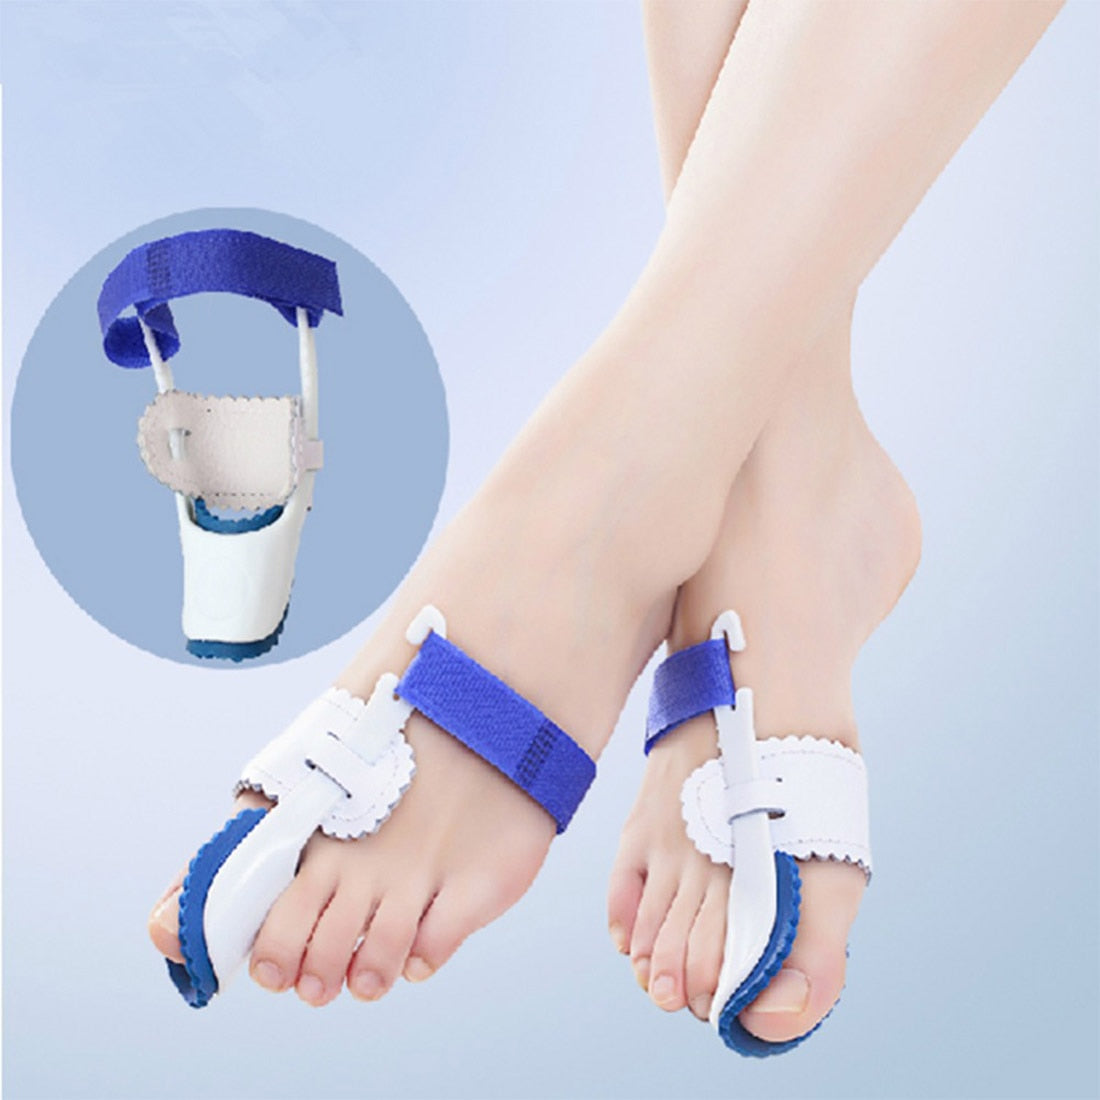 Orthopedic Bunion Corrector Splints For Non-Surgical Relief